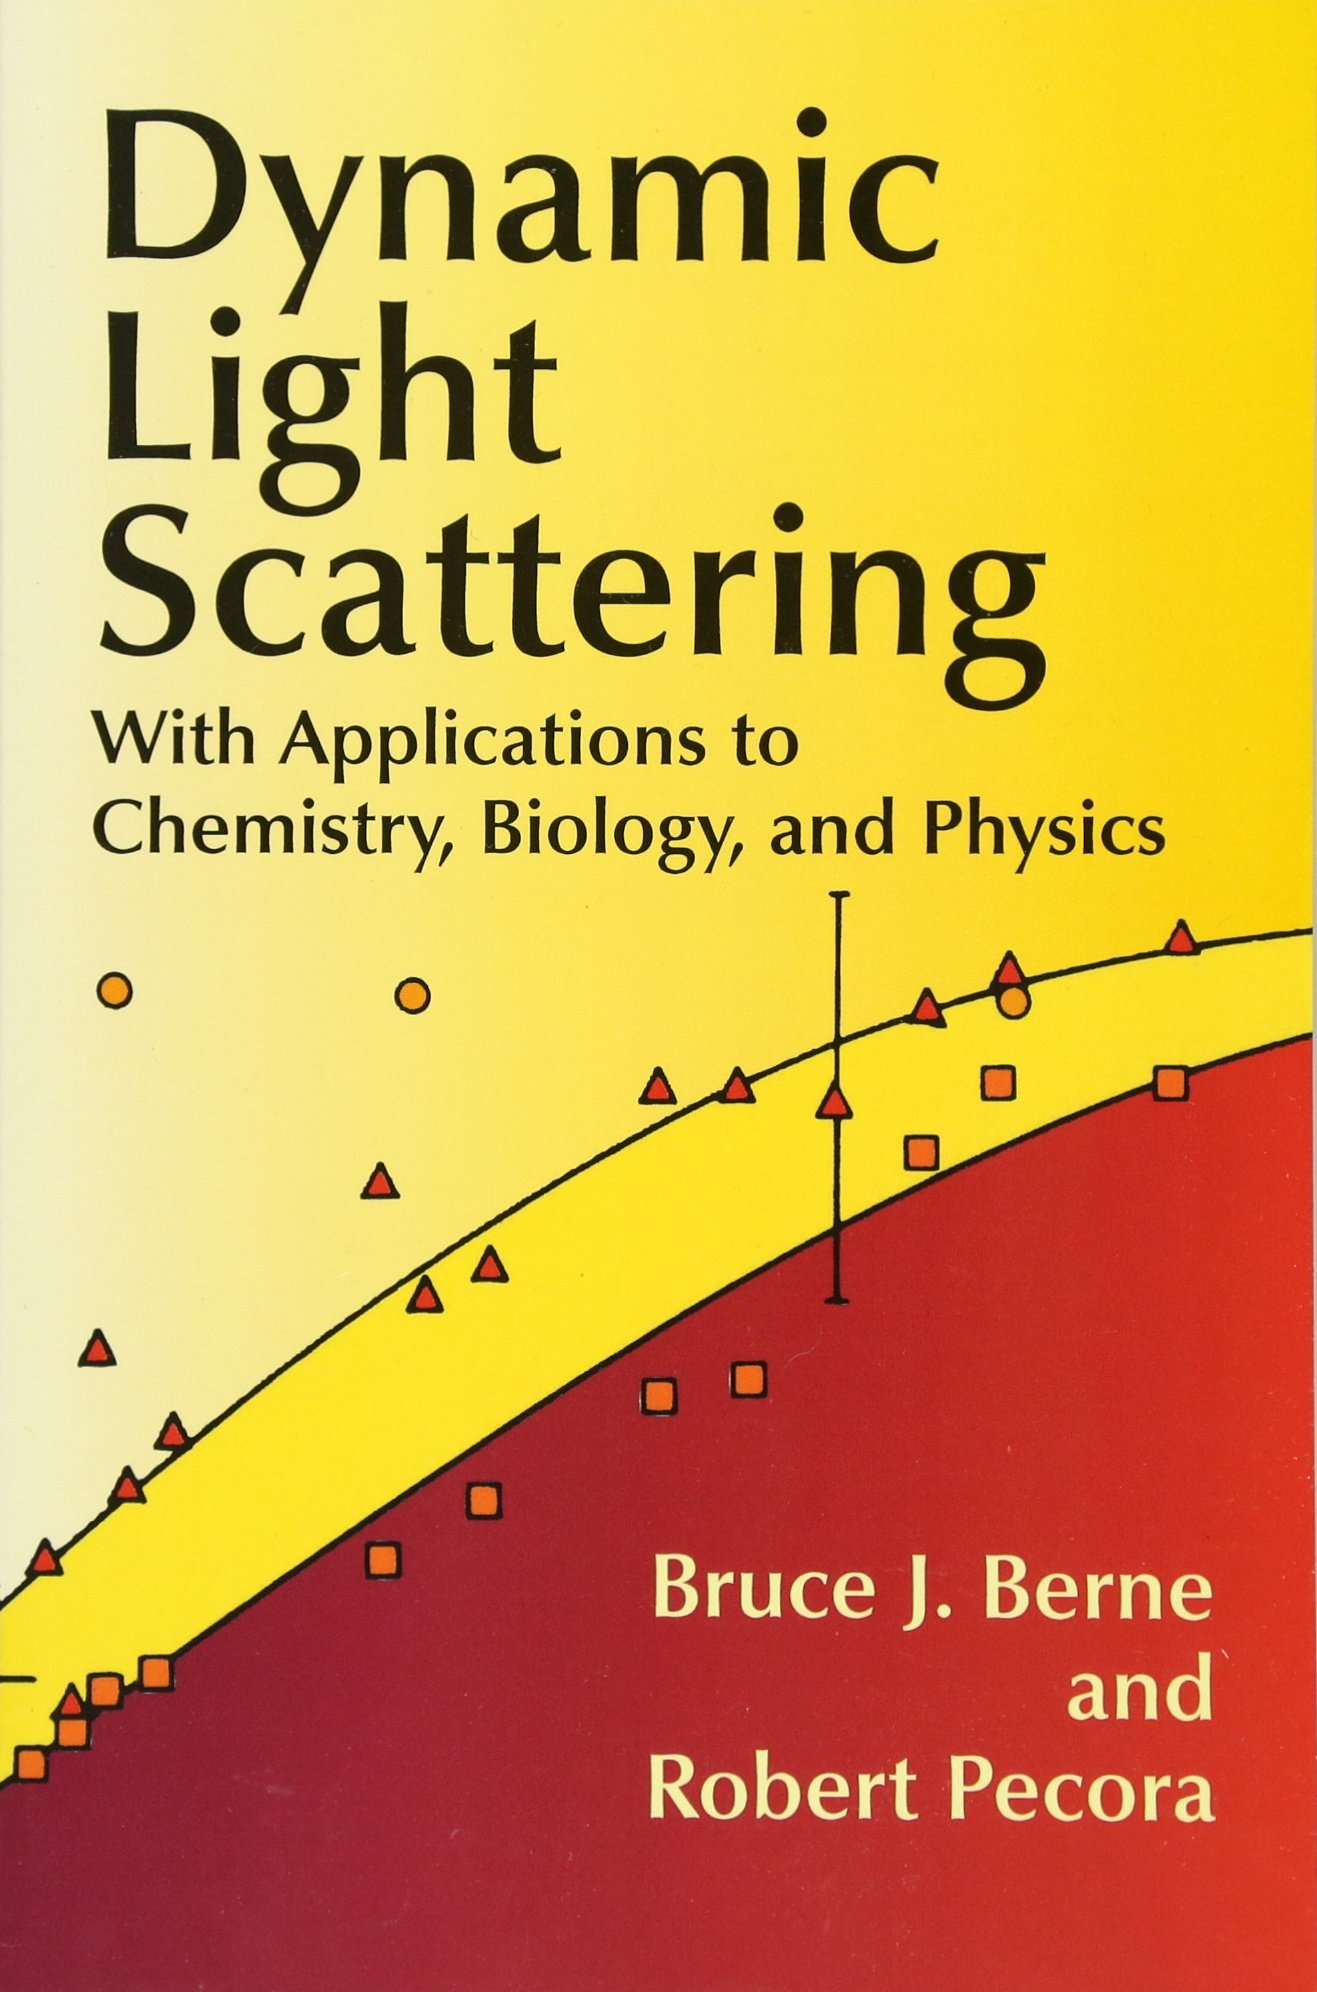 Dynamic Light Scattering: With Applications to Chemistry, Biology, and Physics  Dover Books on Physics: Amazon.de: Bruce J. Berne: Fremdsprachige Bücher